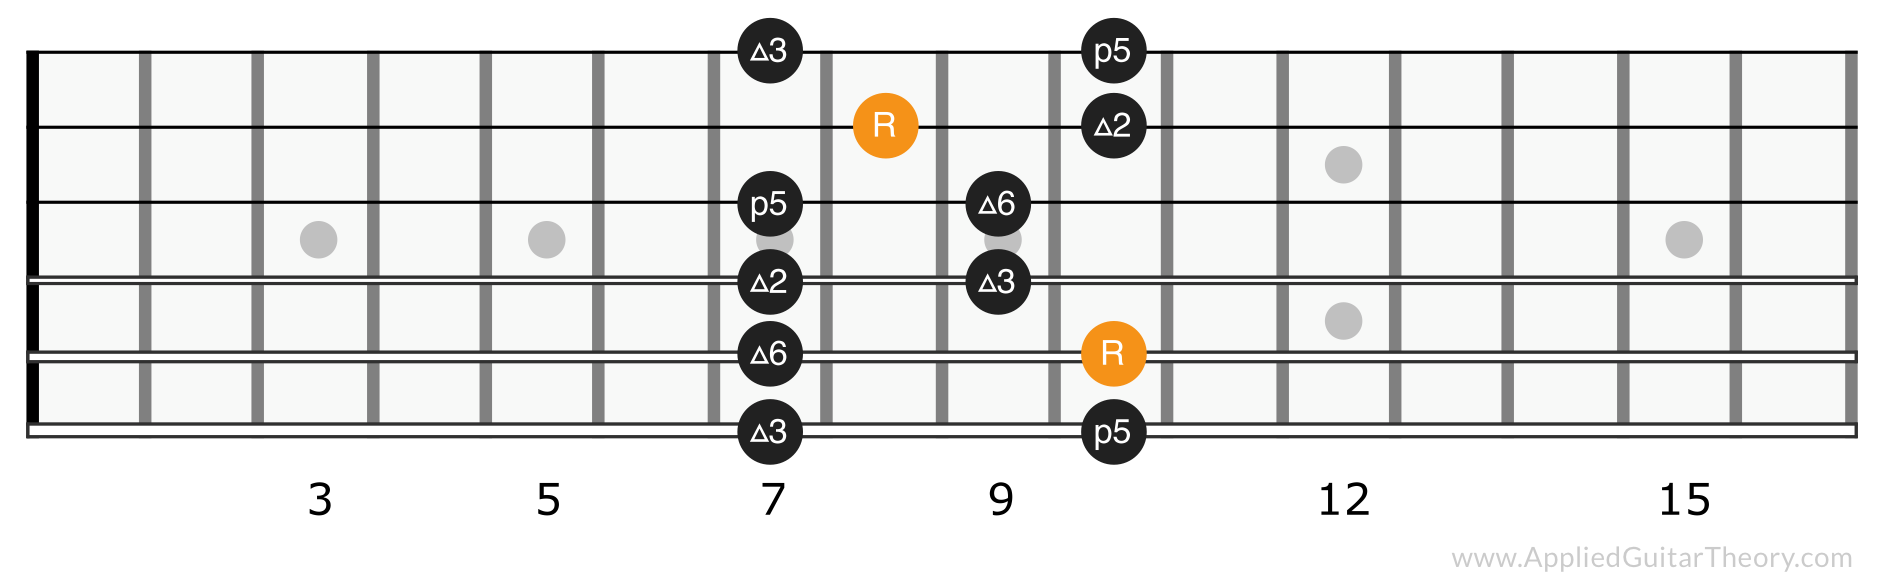 Major pentatonic scale position 3